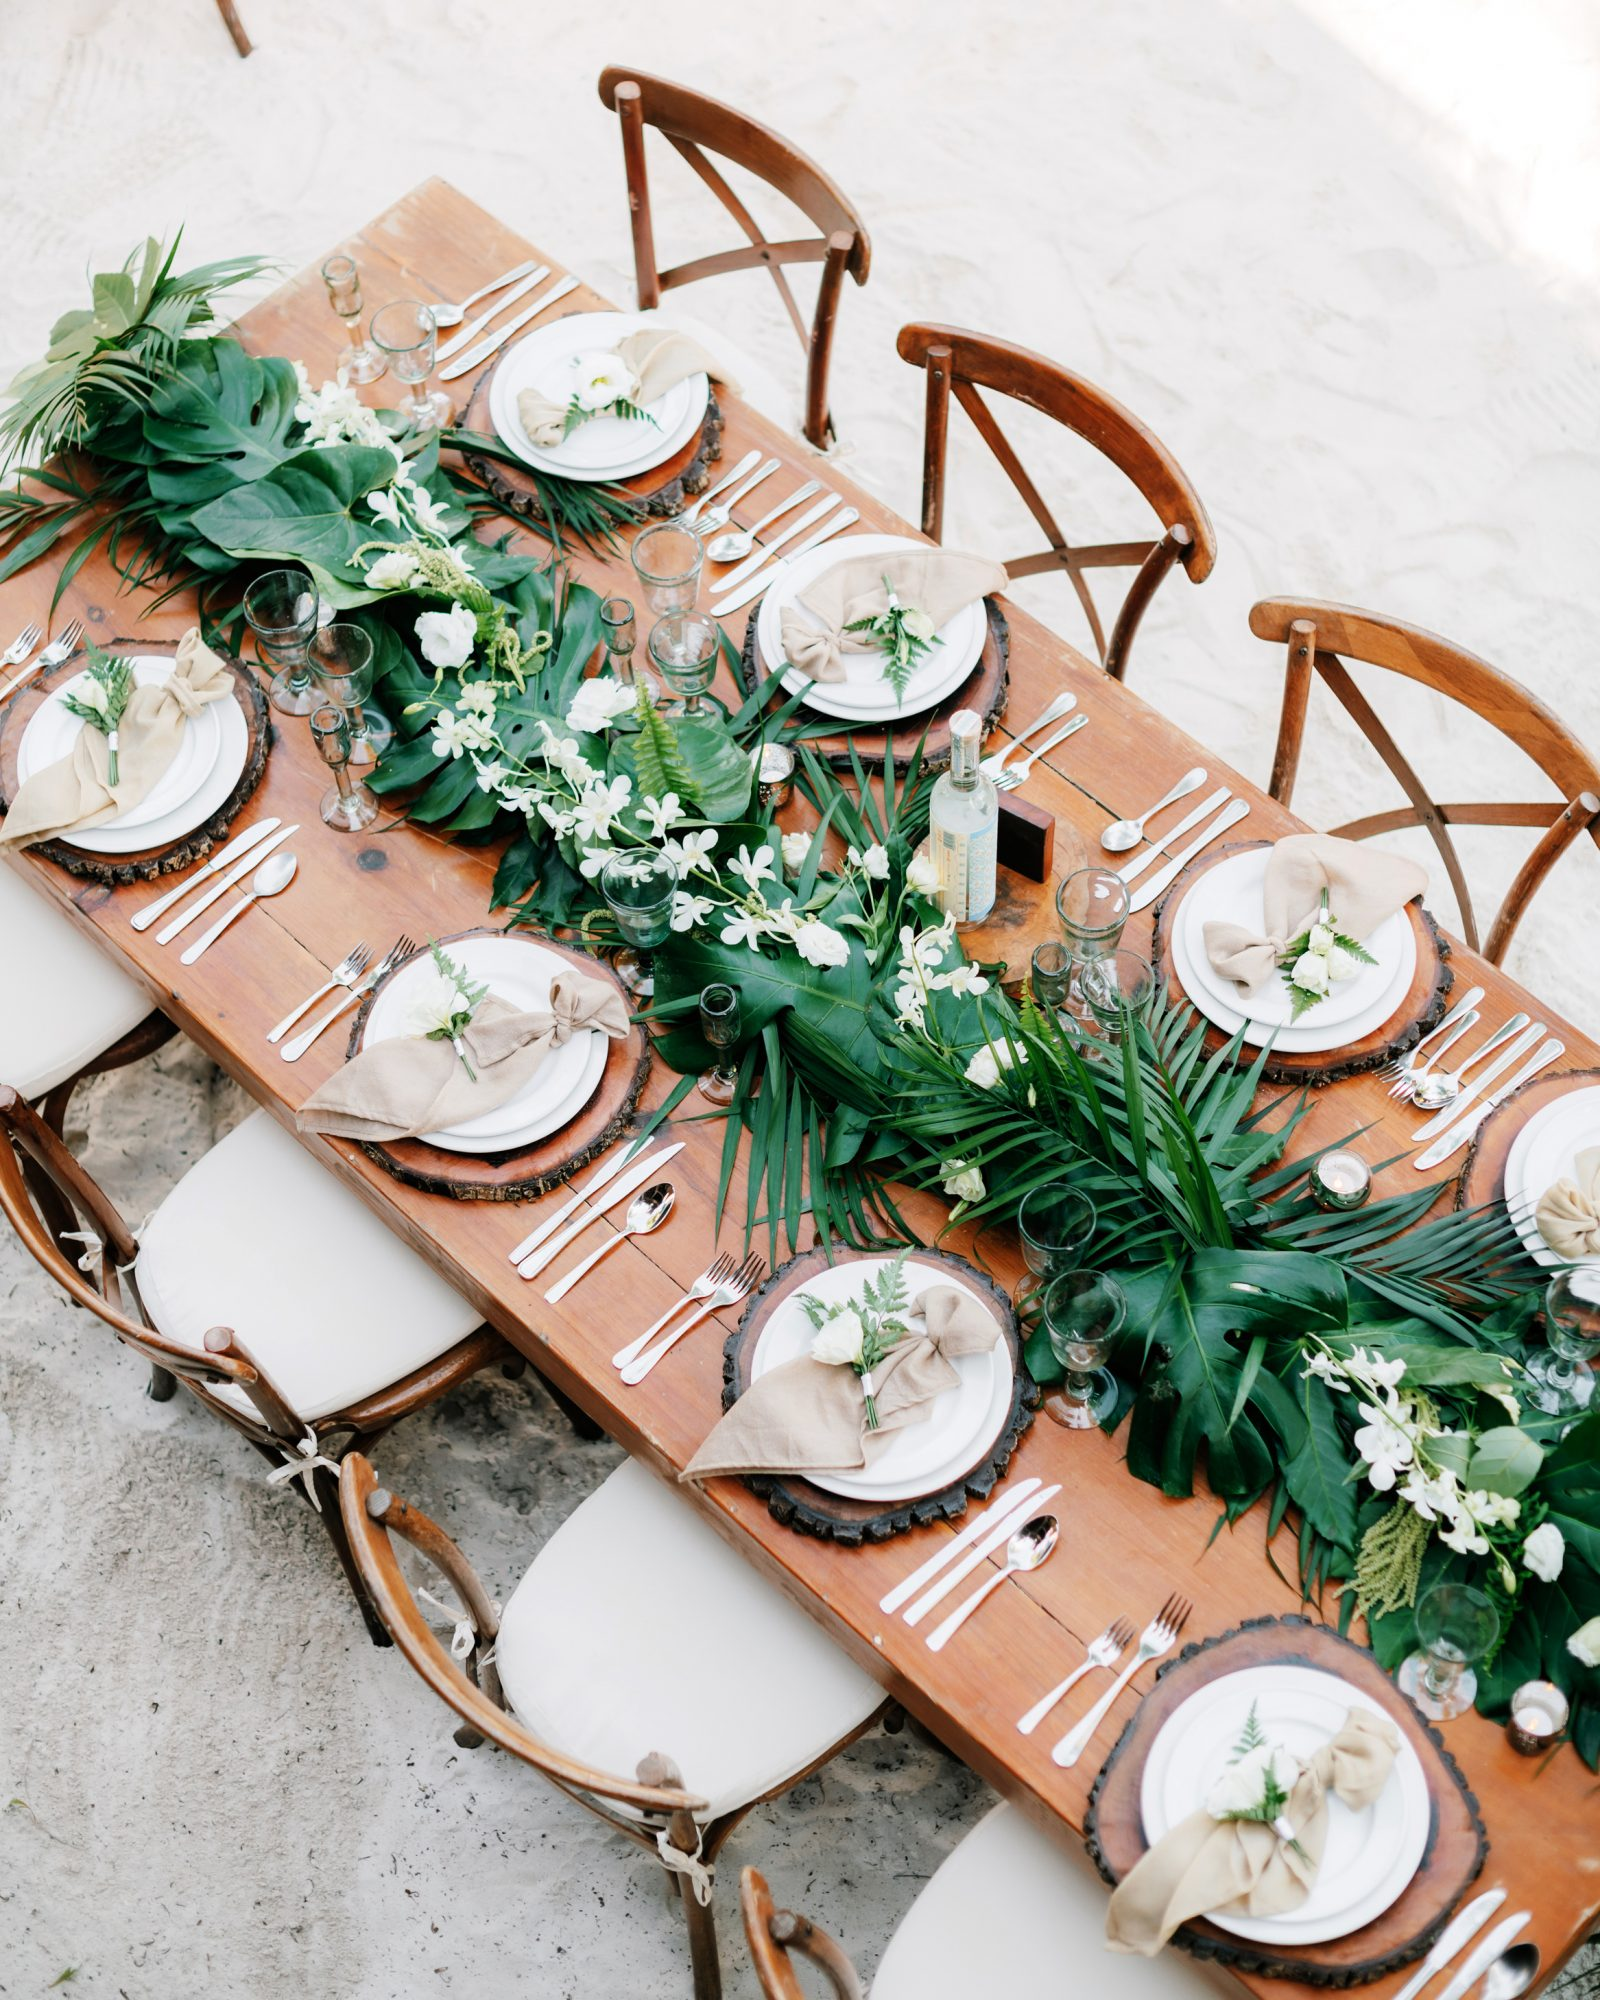 Tropical Wedding Ideas That Will Transform Your Big Day Into an Oasis |  Martha Stewart